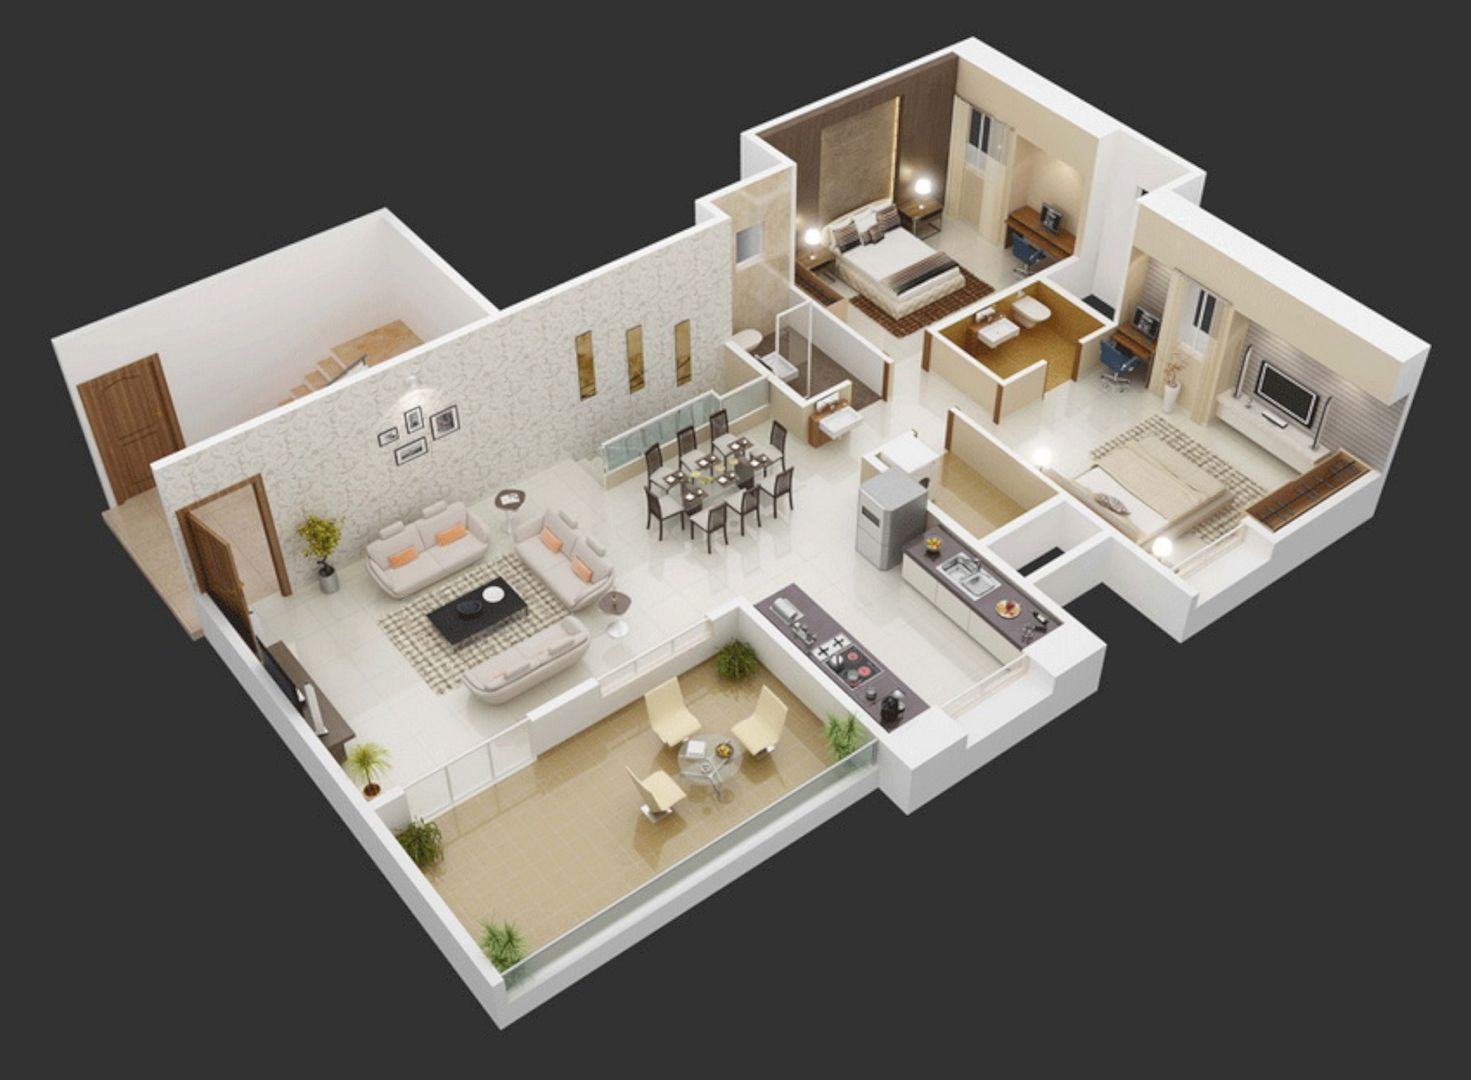 Why Do We Need 3d House Plan Before Starting The Project 3d House Plans Bedroom House Plans House Plans